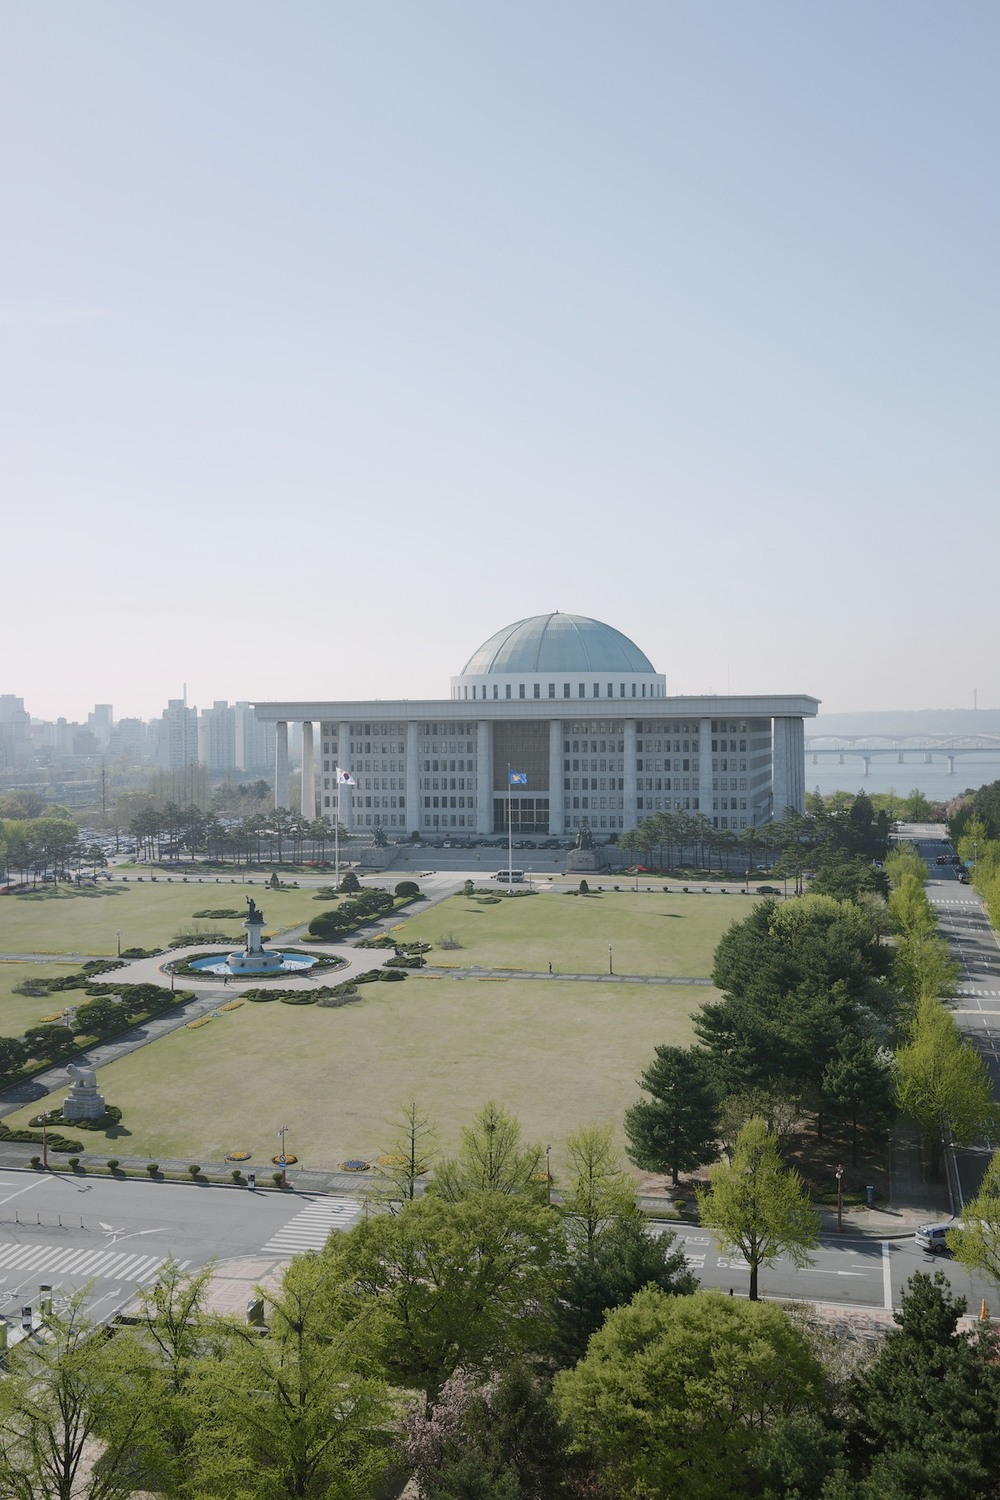 The National Assembly Building (국회의사당).